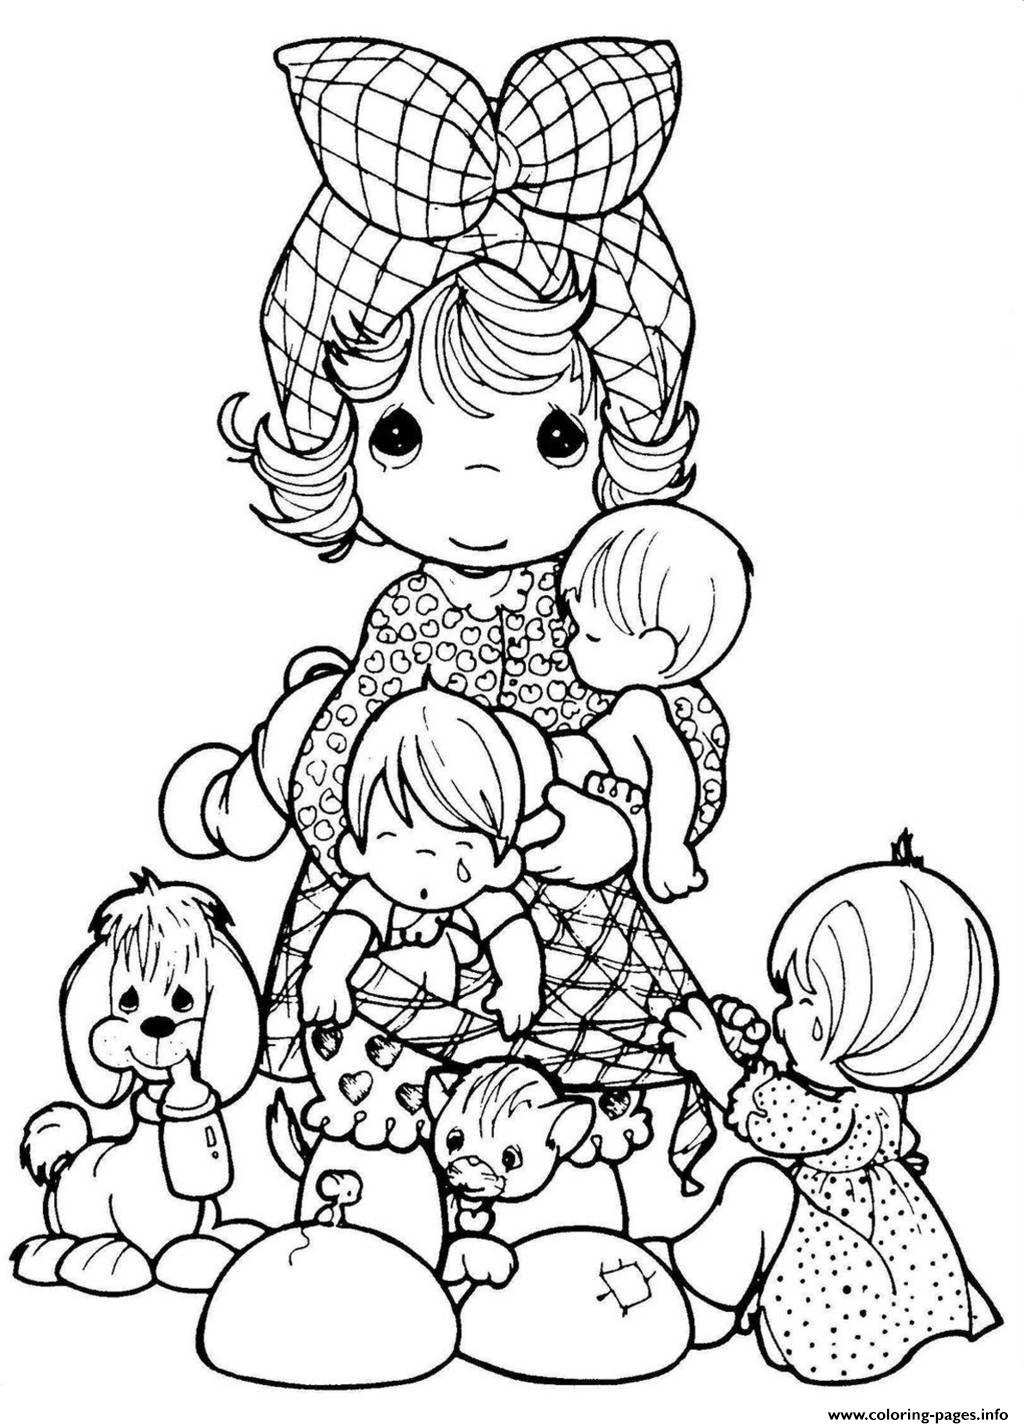 Print Adult Precious Moments Coloring Pages